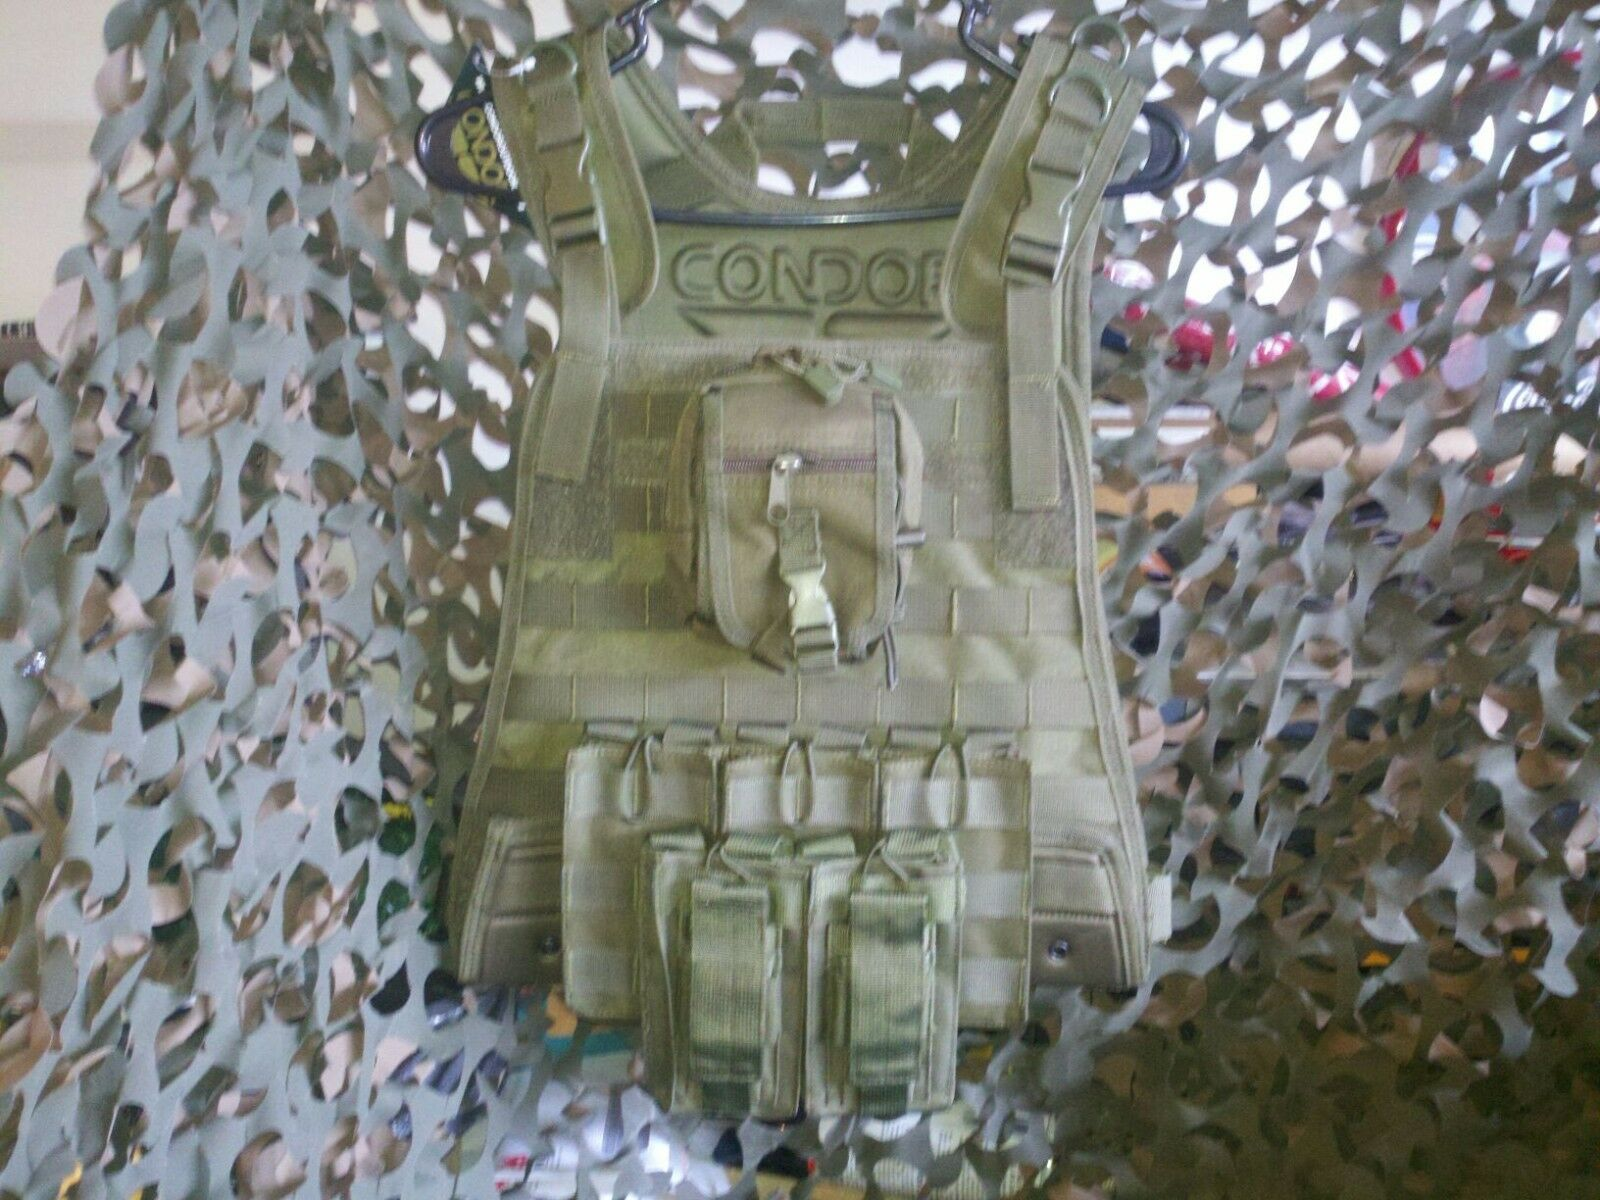 AR500 10 x12  Curved TAC Steel Plates & Condor OD Carrier & All Molle Shown